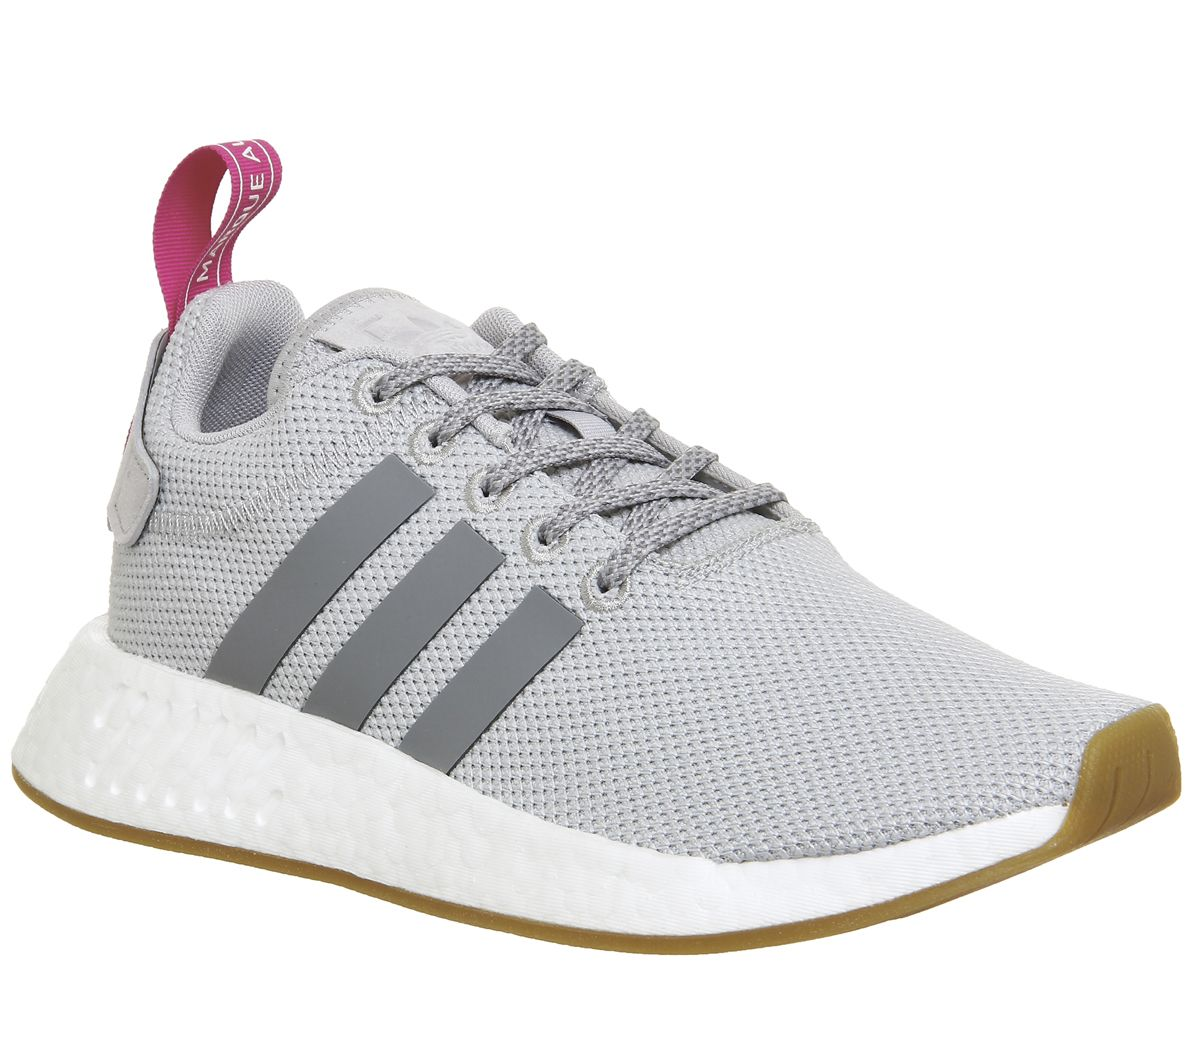 4b1f3231c7aee adidas Nmd R2 Trainers Grey Two Pink - Hers trainers